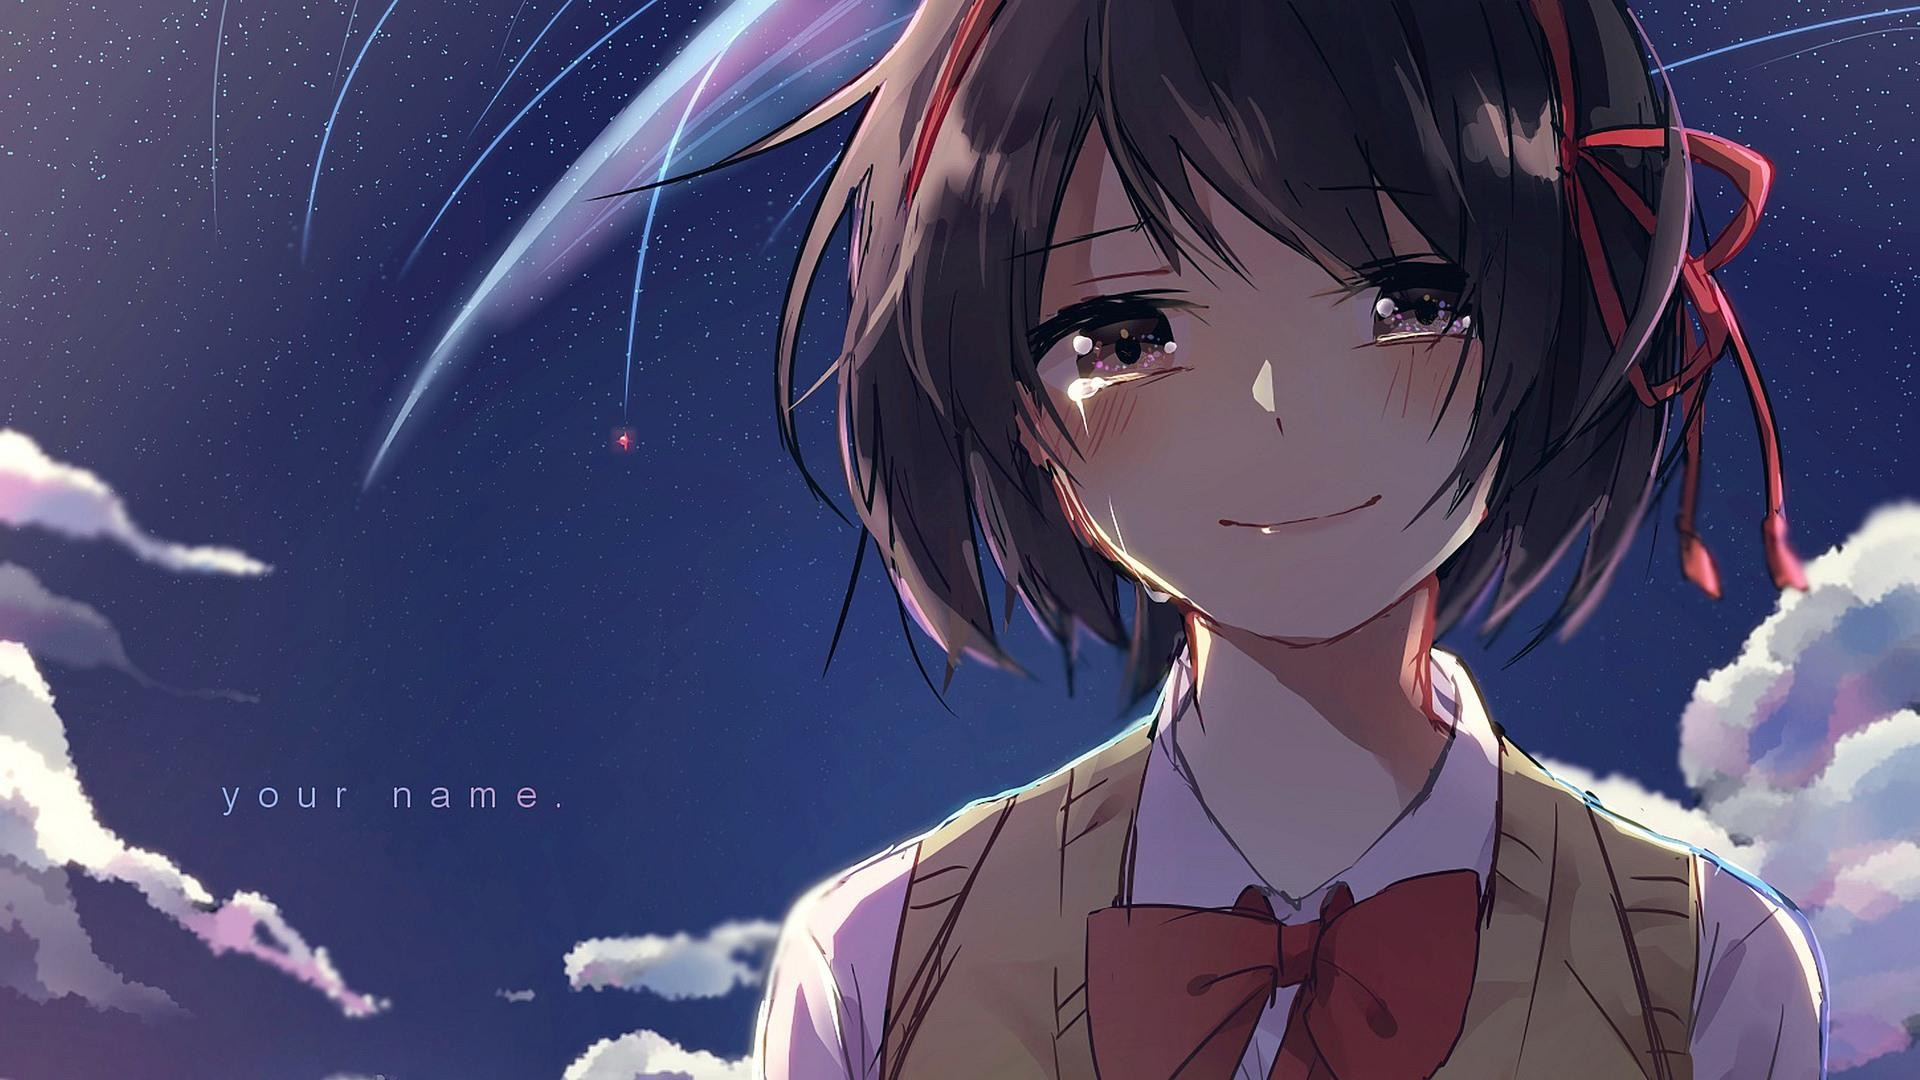 Crying Anime Wallpapers - Wallpaper Cave